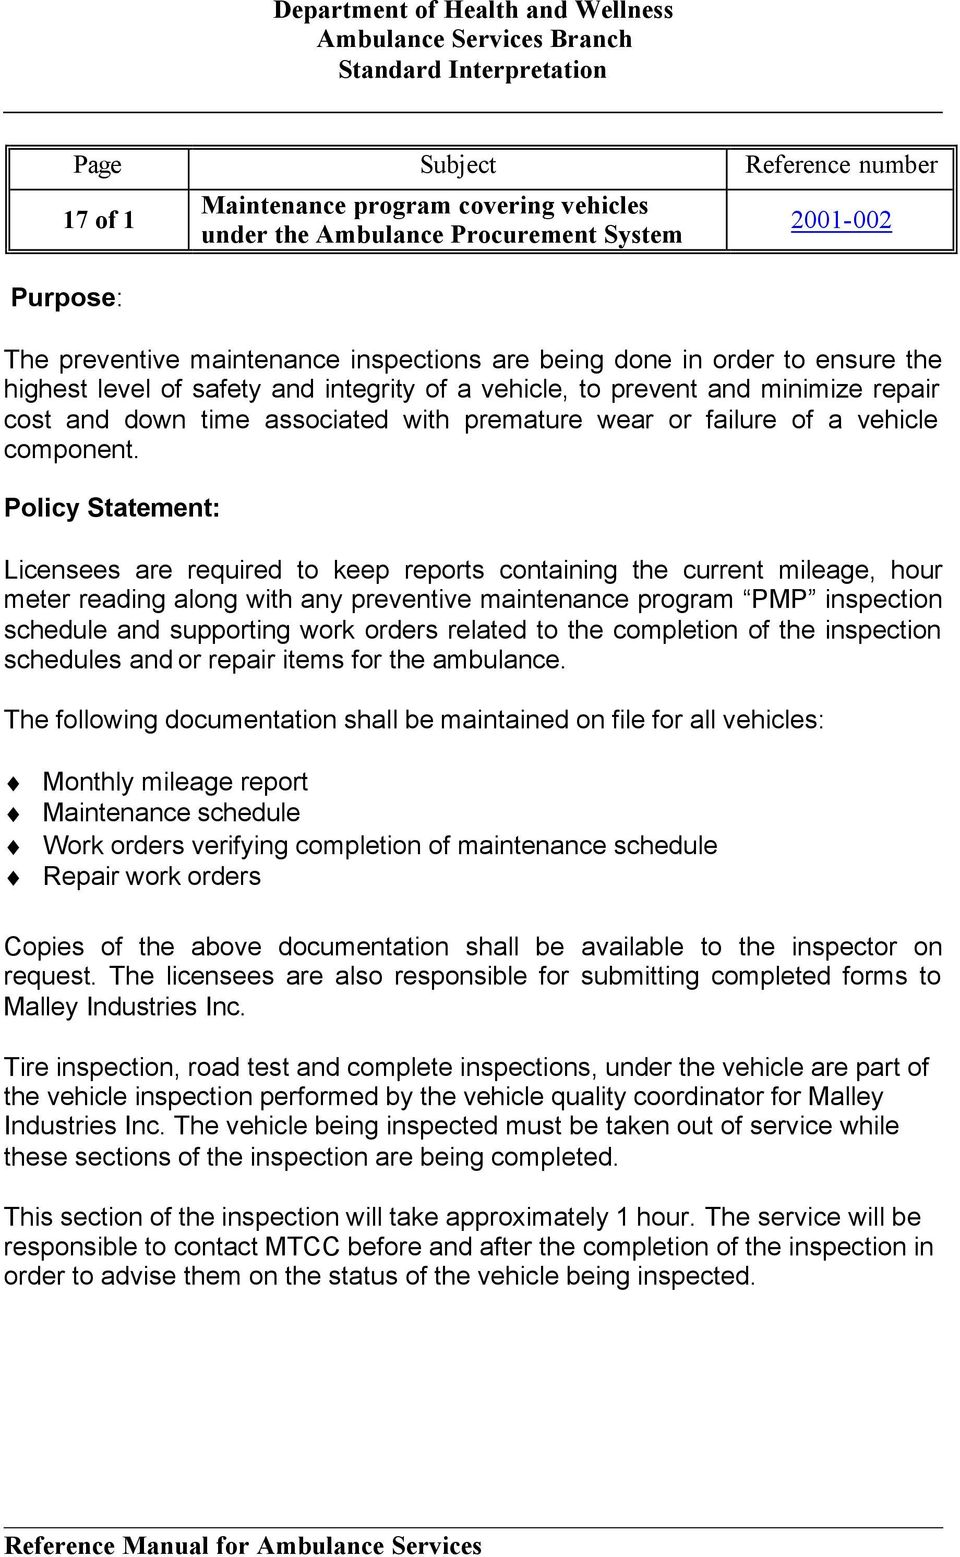 Policy Statement: Licensees are required to keep reports containing the current mileage, hour meter reading along with any preventive maintenance program PMP inspection schedule and supporting work